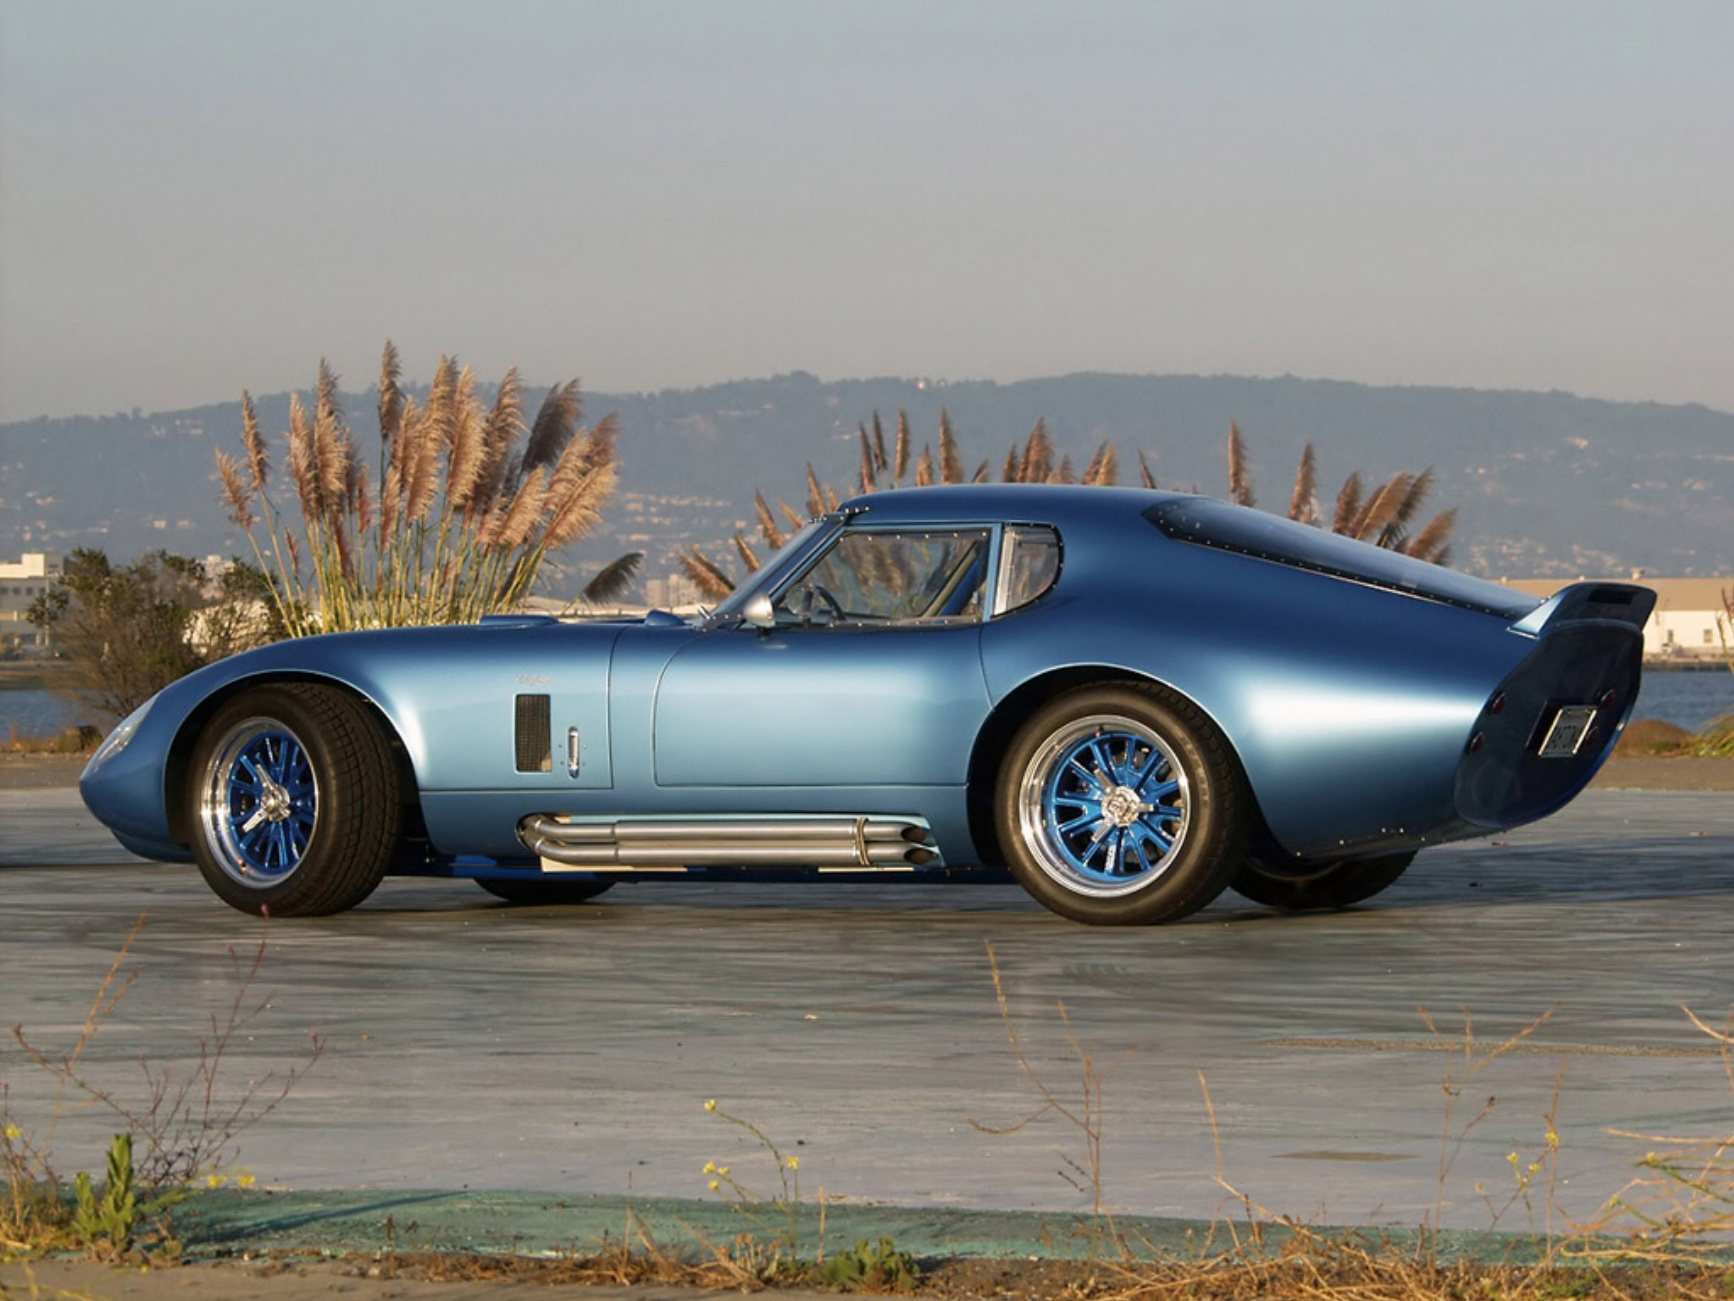 1964 Shelby A C Cobra Daytona Coupe Supercars Supercar Race Racing S Wallpaper 1734x1301